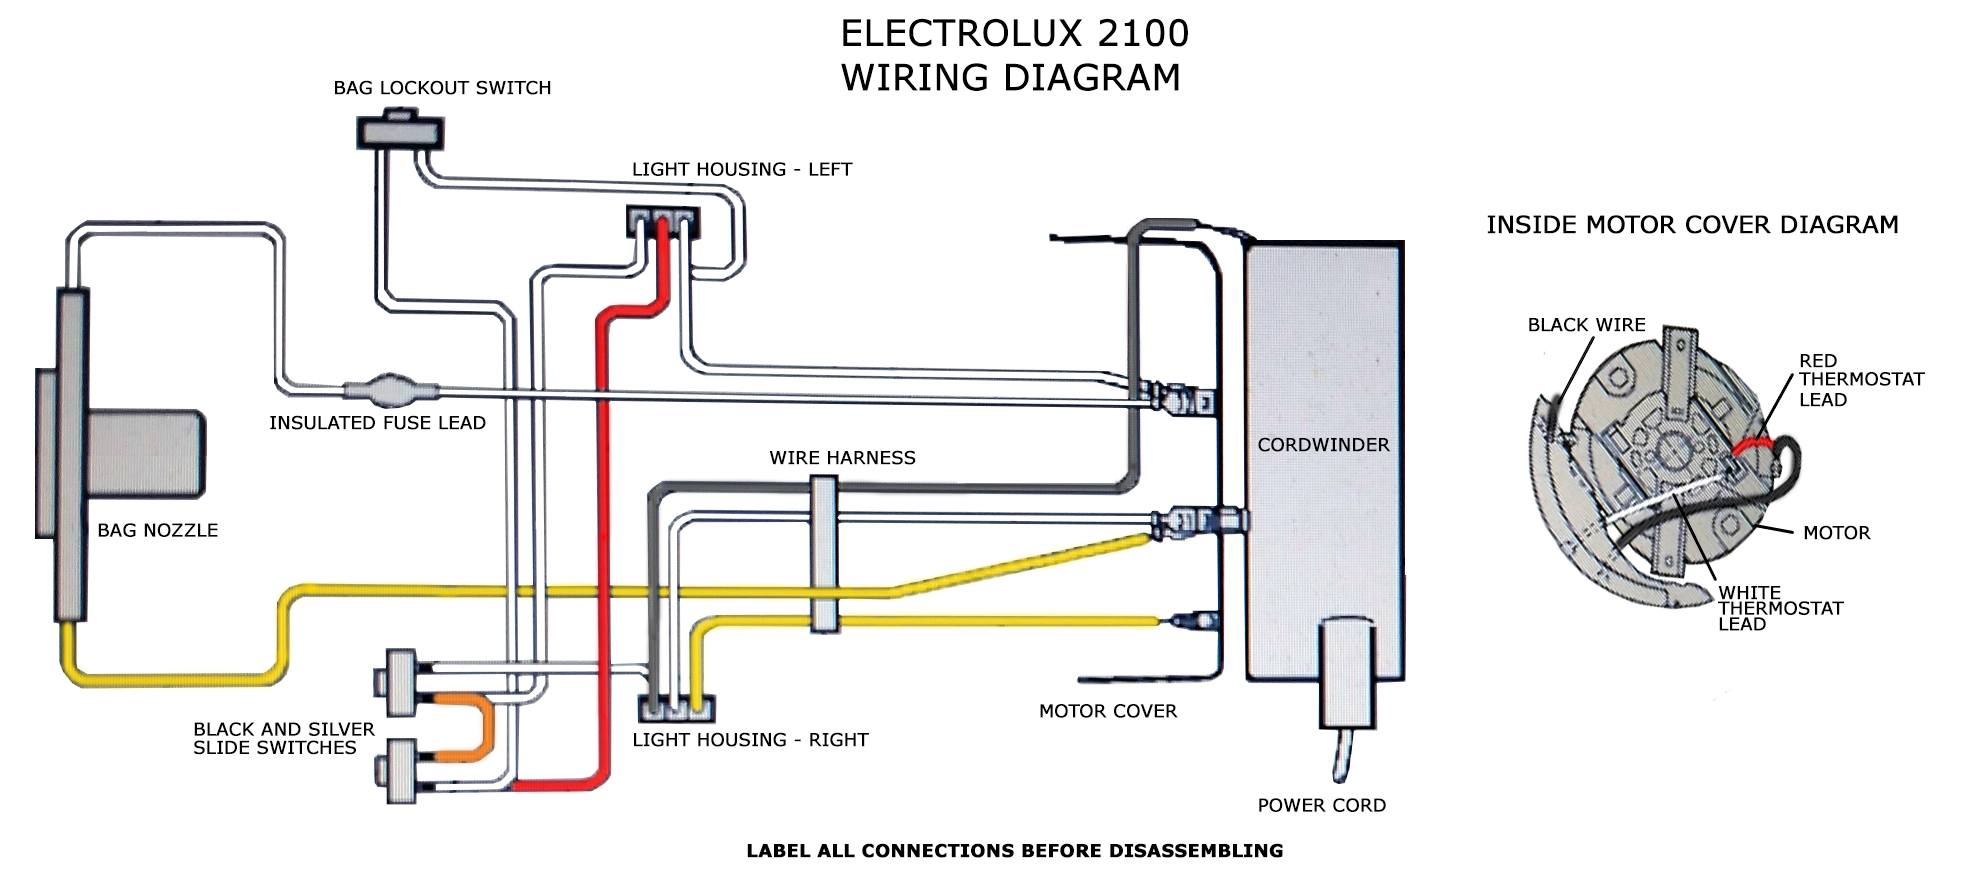 2100 wiring diagram miele vacuum wiring diagram osram wiring diagram \u2022 wiring diagram geyser wiring diagram at alyssarenee.co